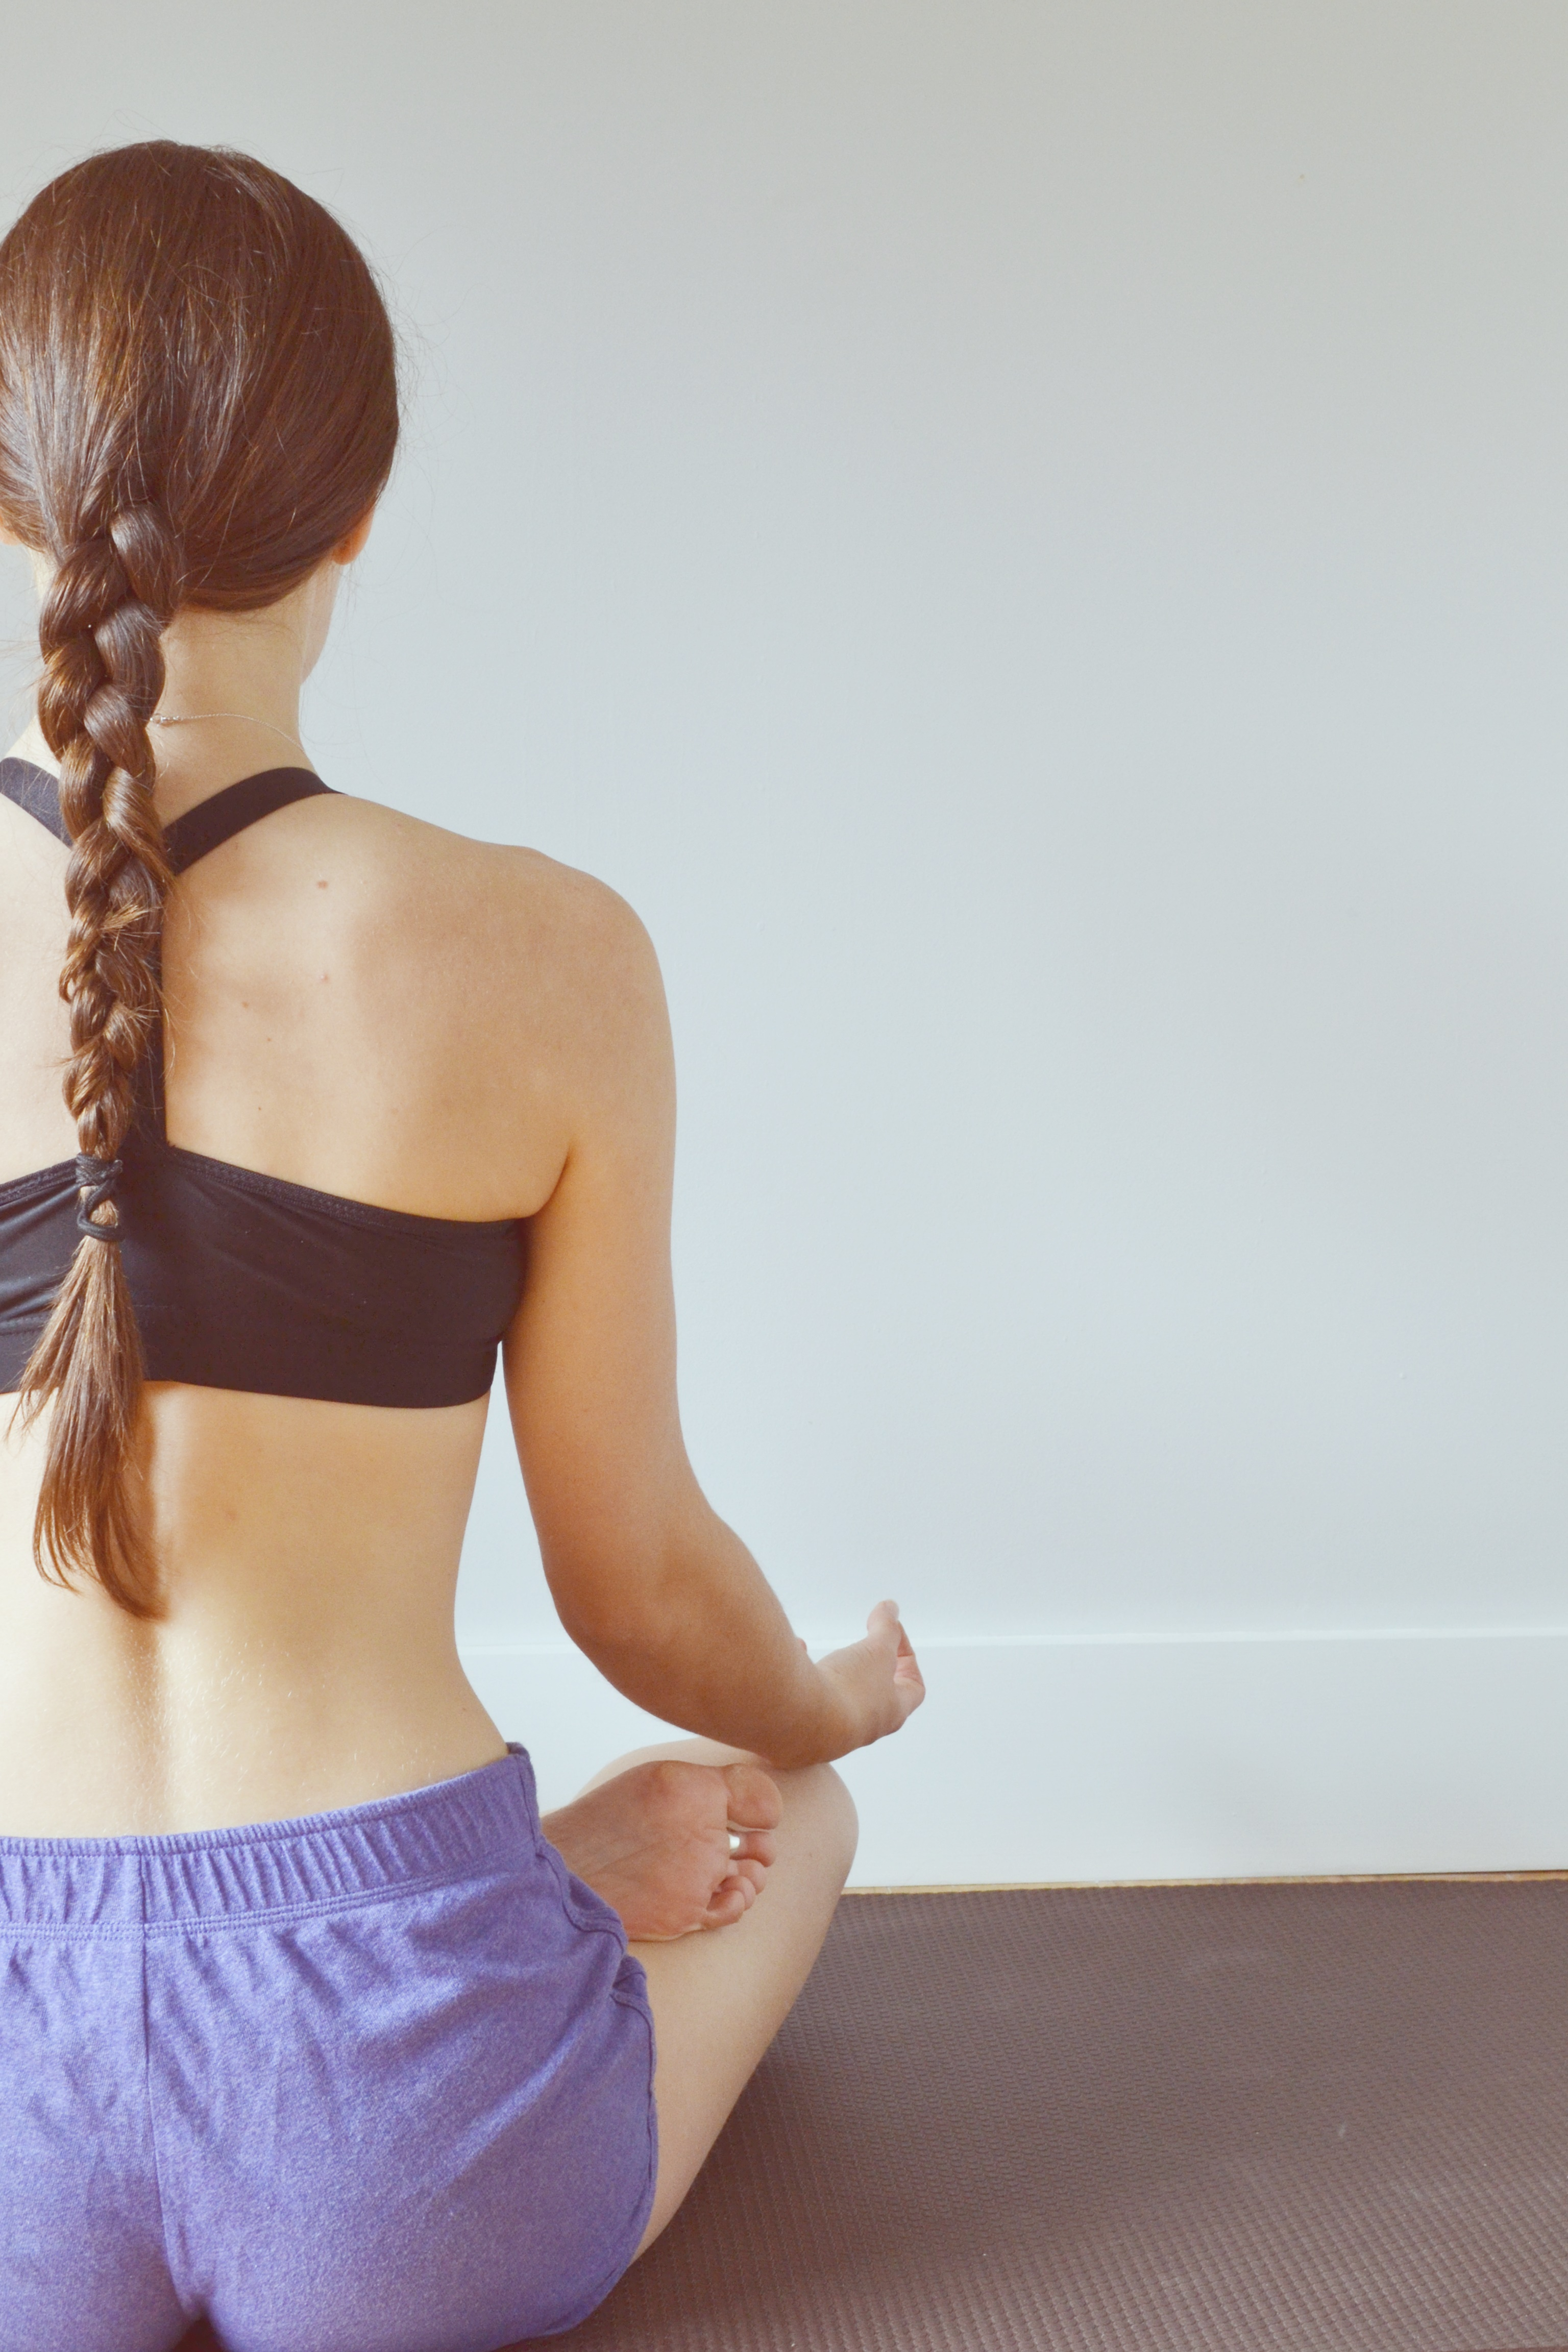 7 Tips For Your First Yoga Class